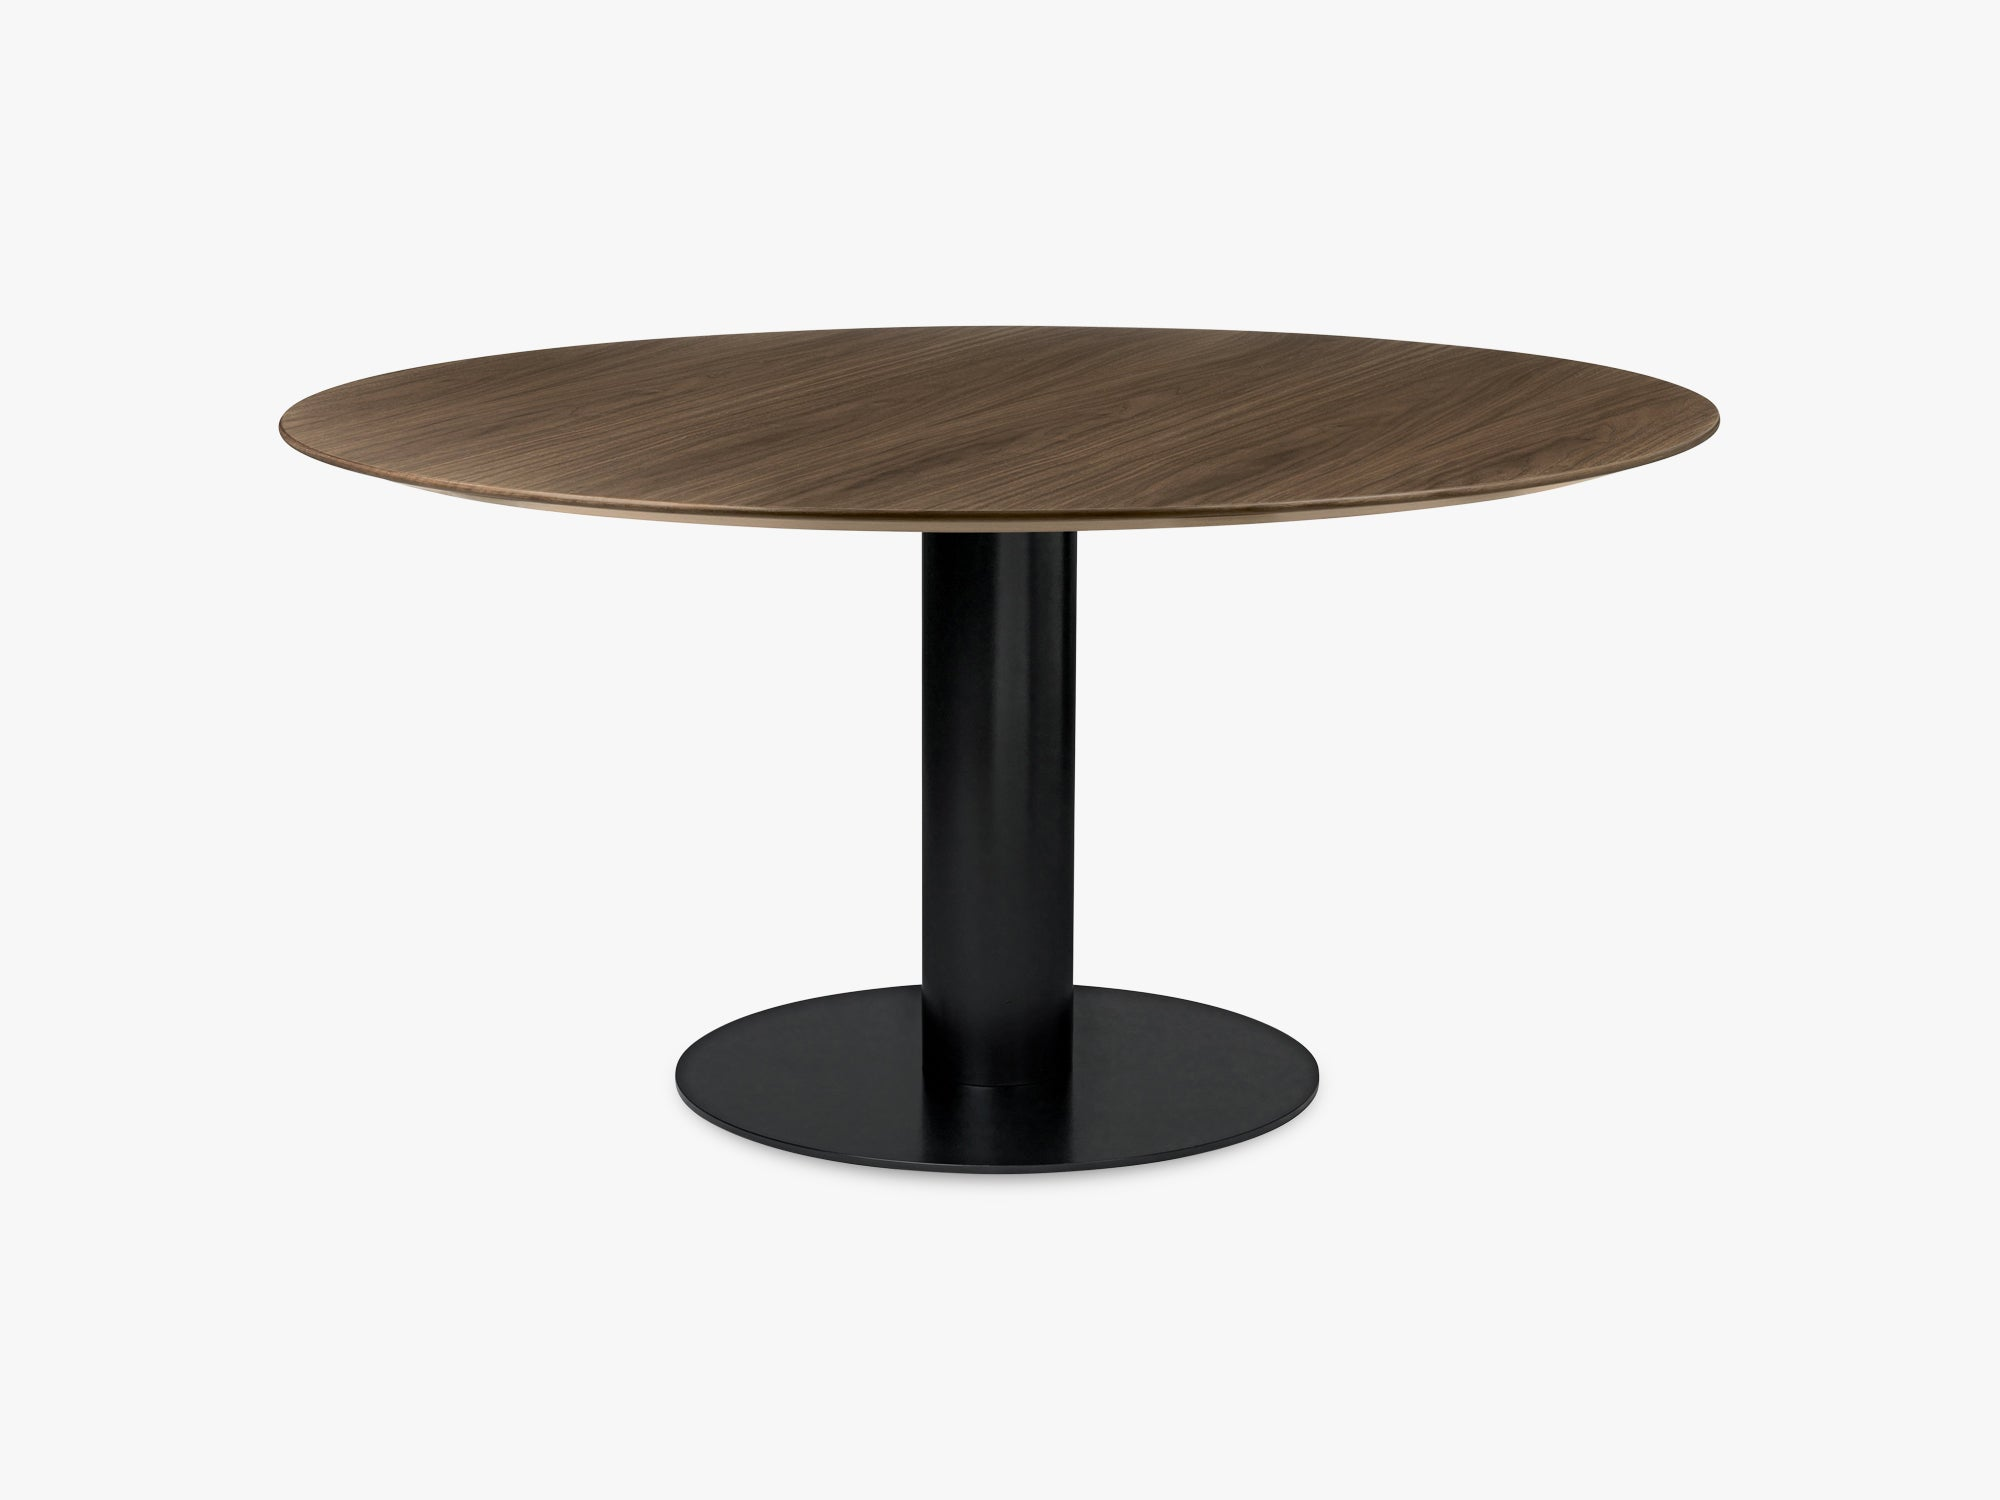 GUBI 2.0 Dining Table - Round - Ø150 - Black base, Walnut top fra GUBI